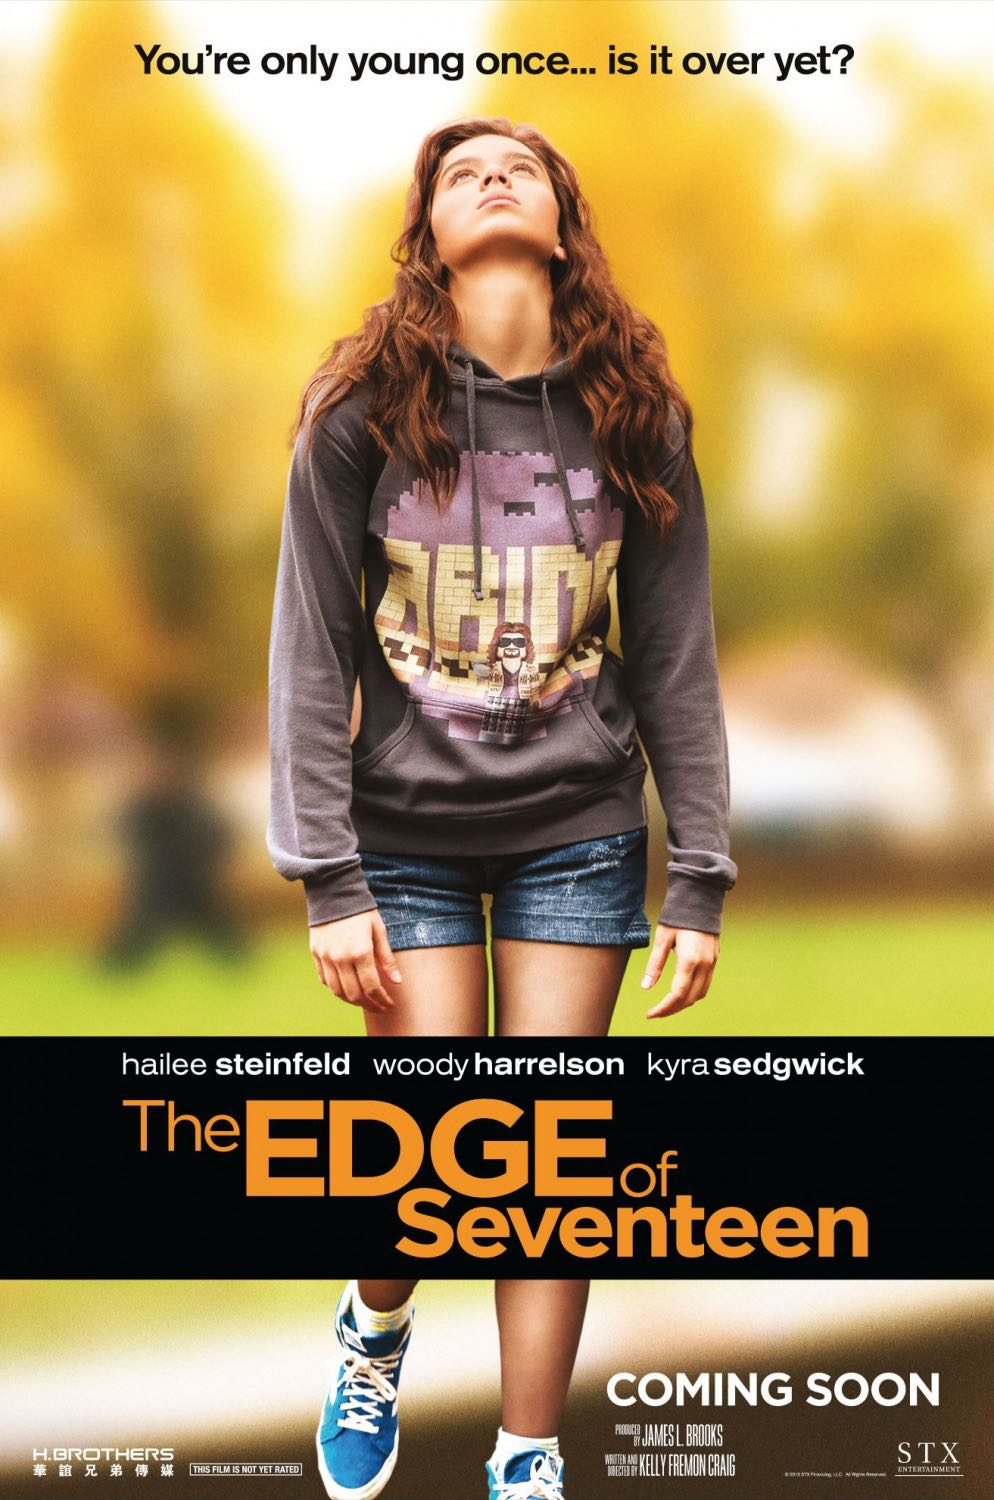 the-edge_of_seventeen_movie_poster.jpg